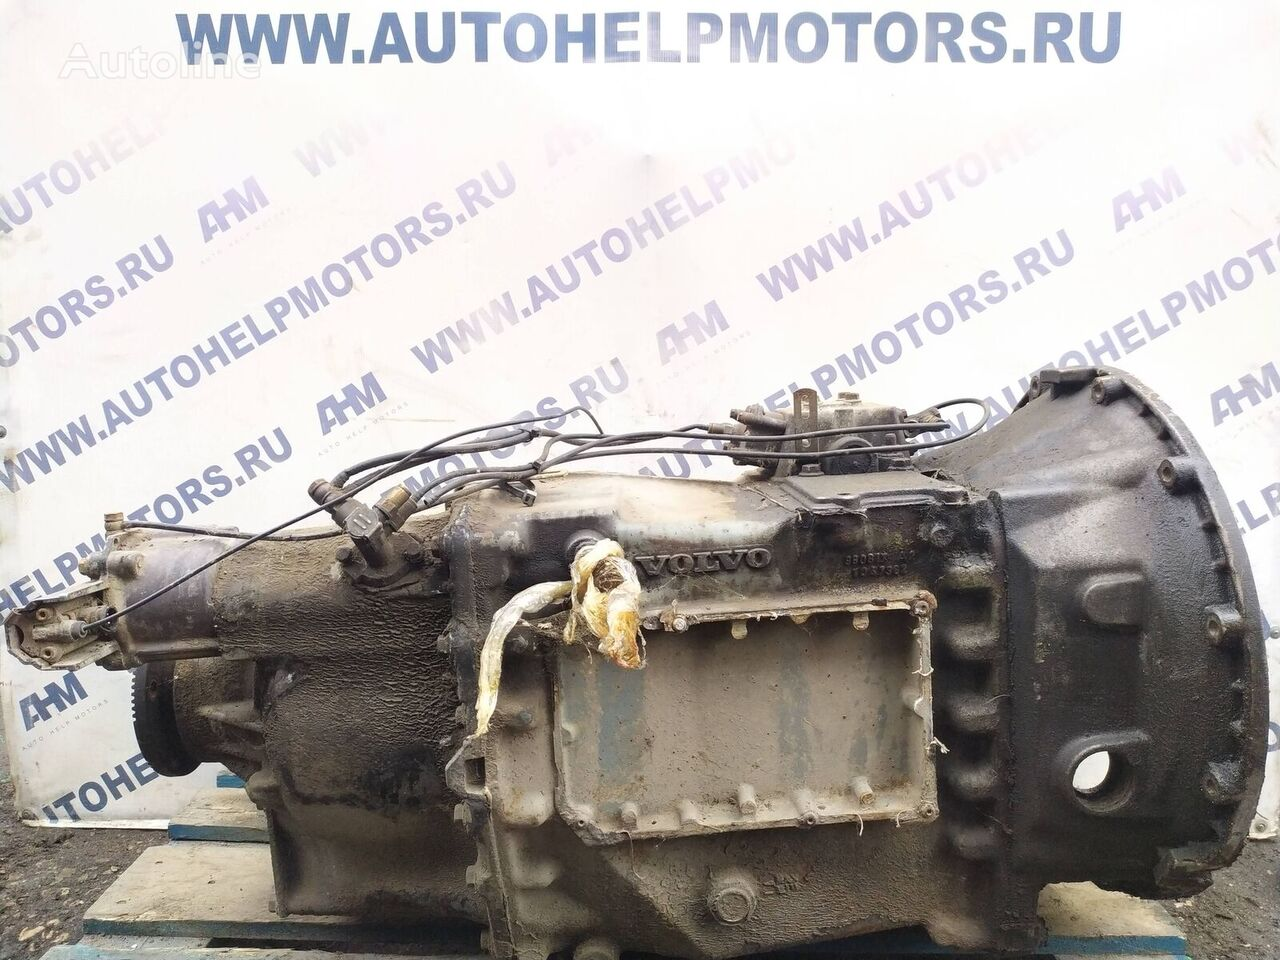 SR1400 gearbox for VOLVO tractor unit